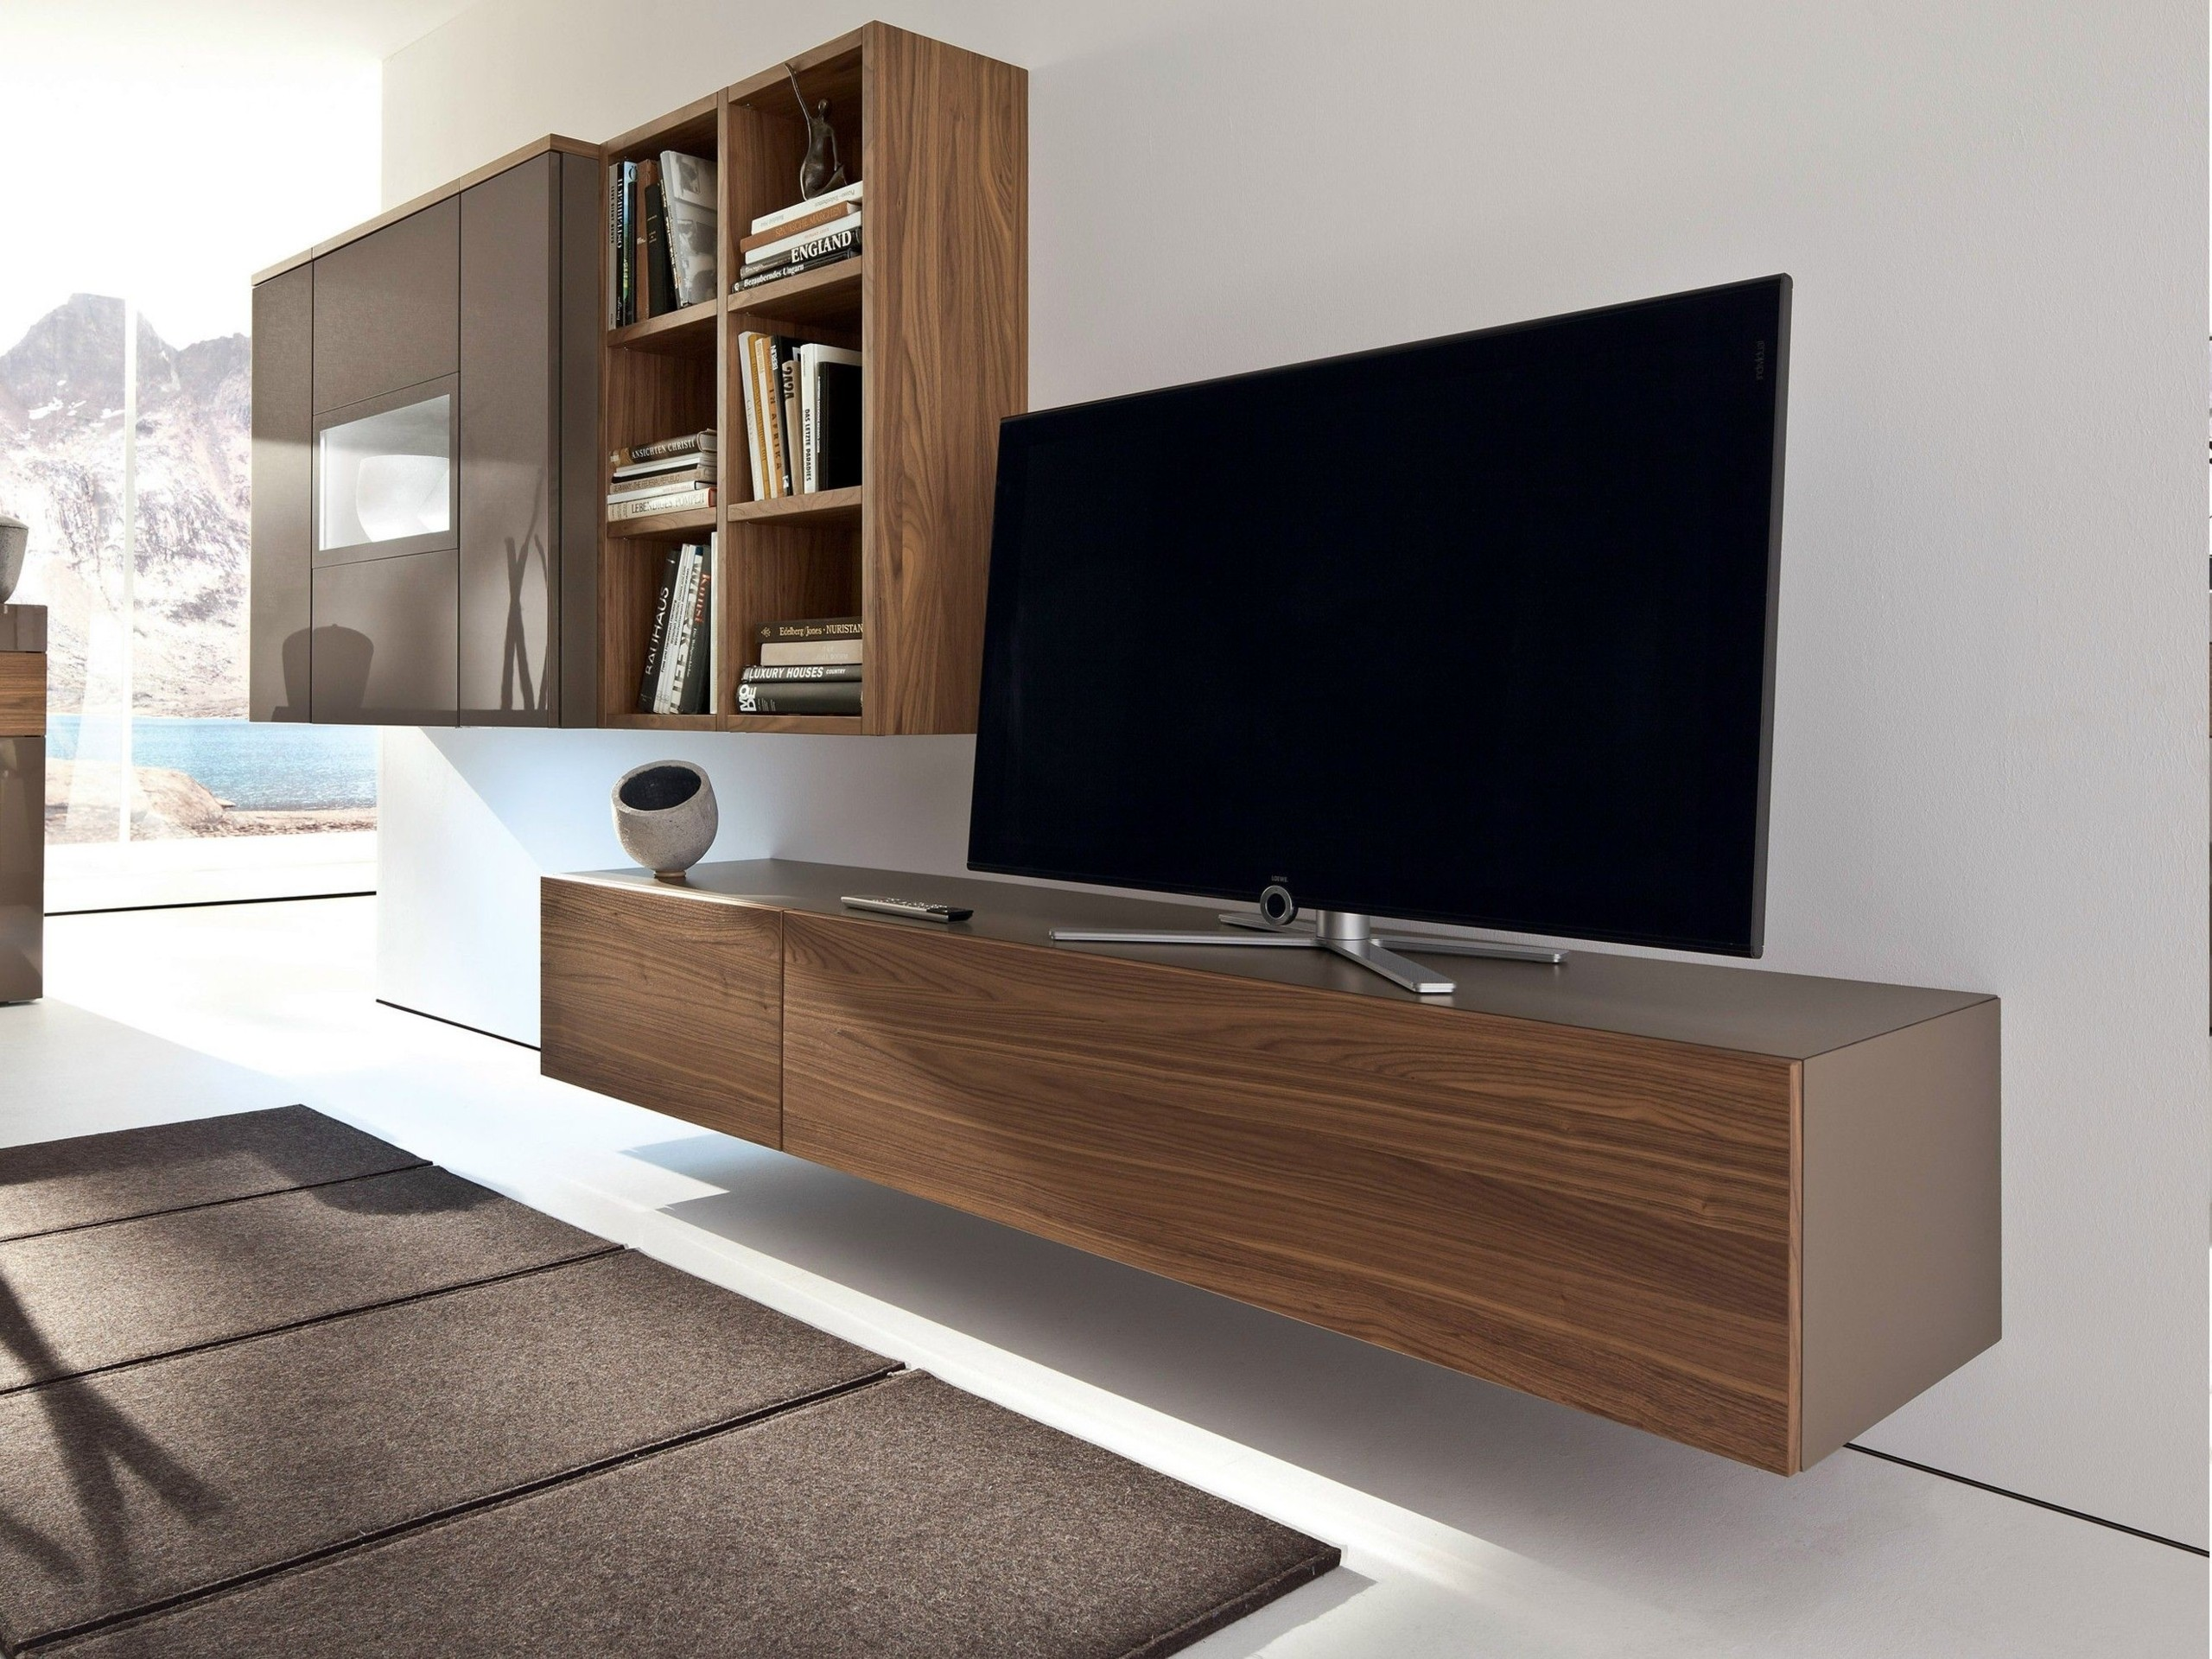 Ideas Brilliant Idea To Save Space By Mounting Tv Wall